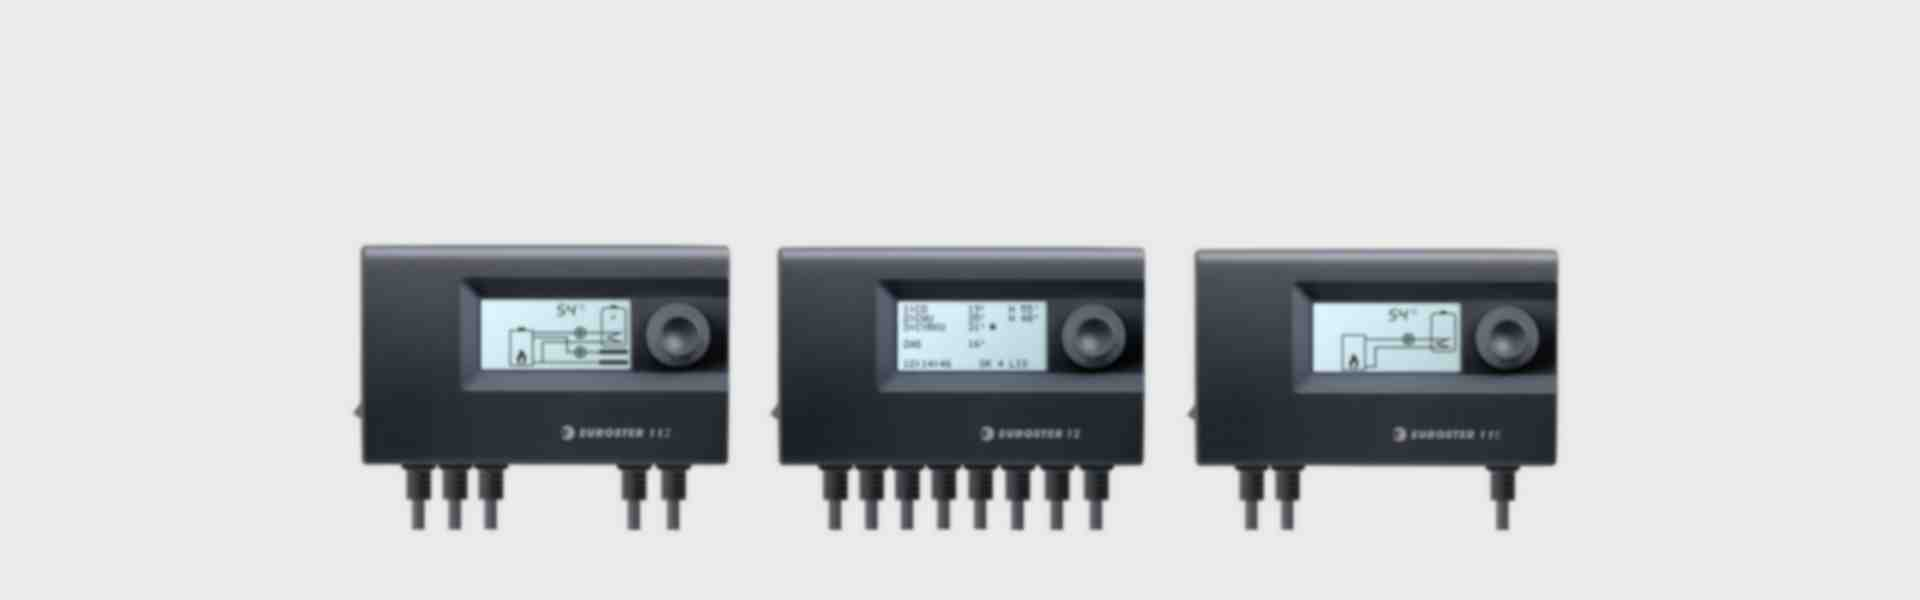 DHW pump controllers